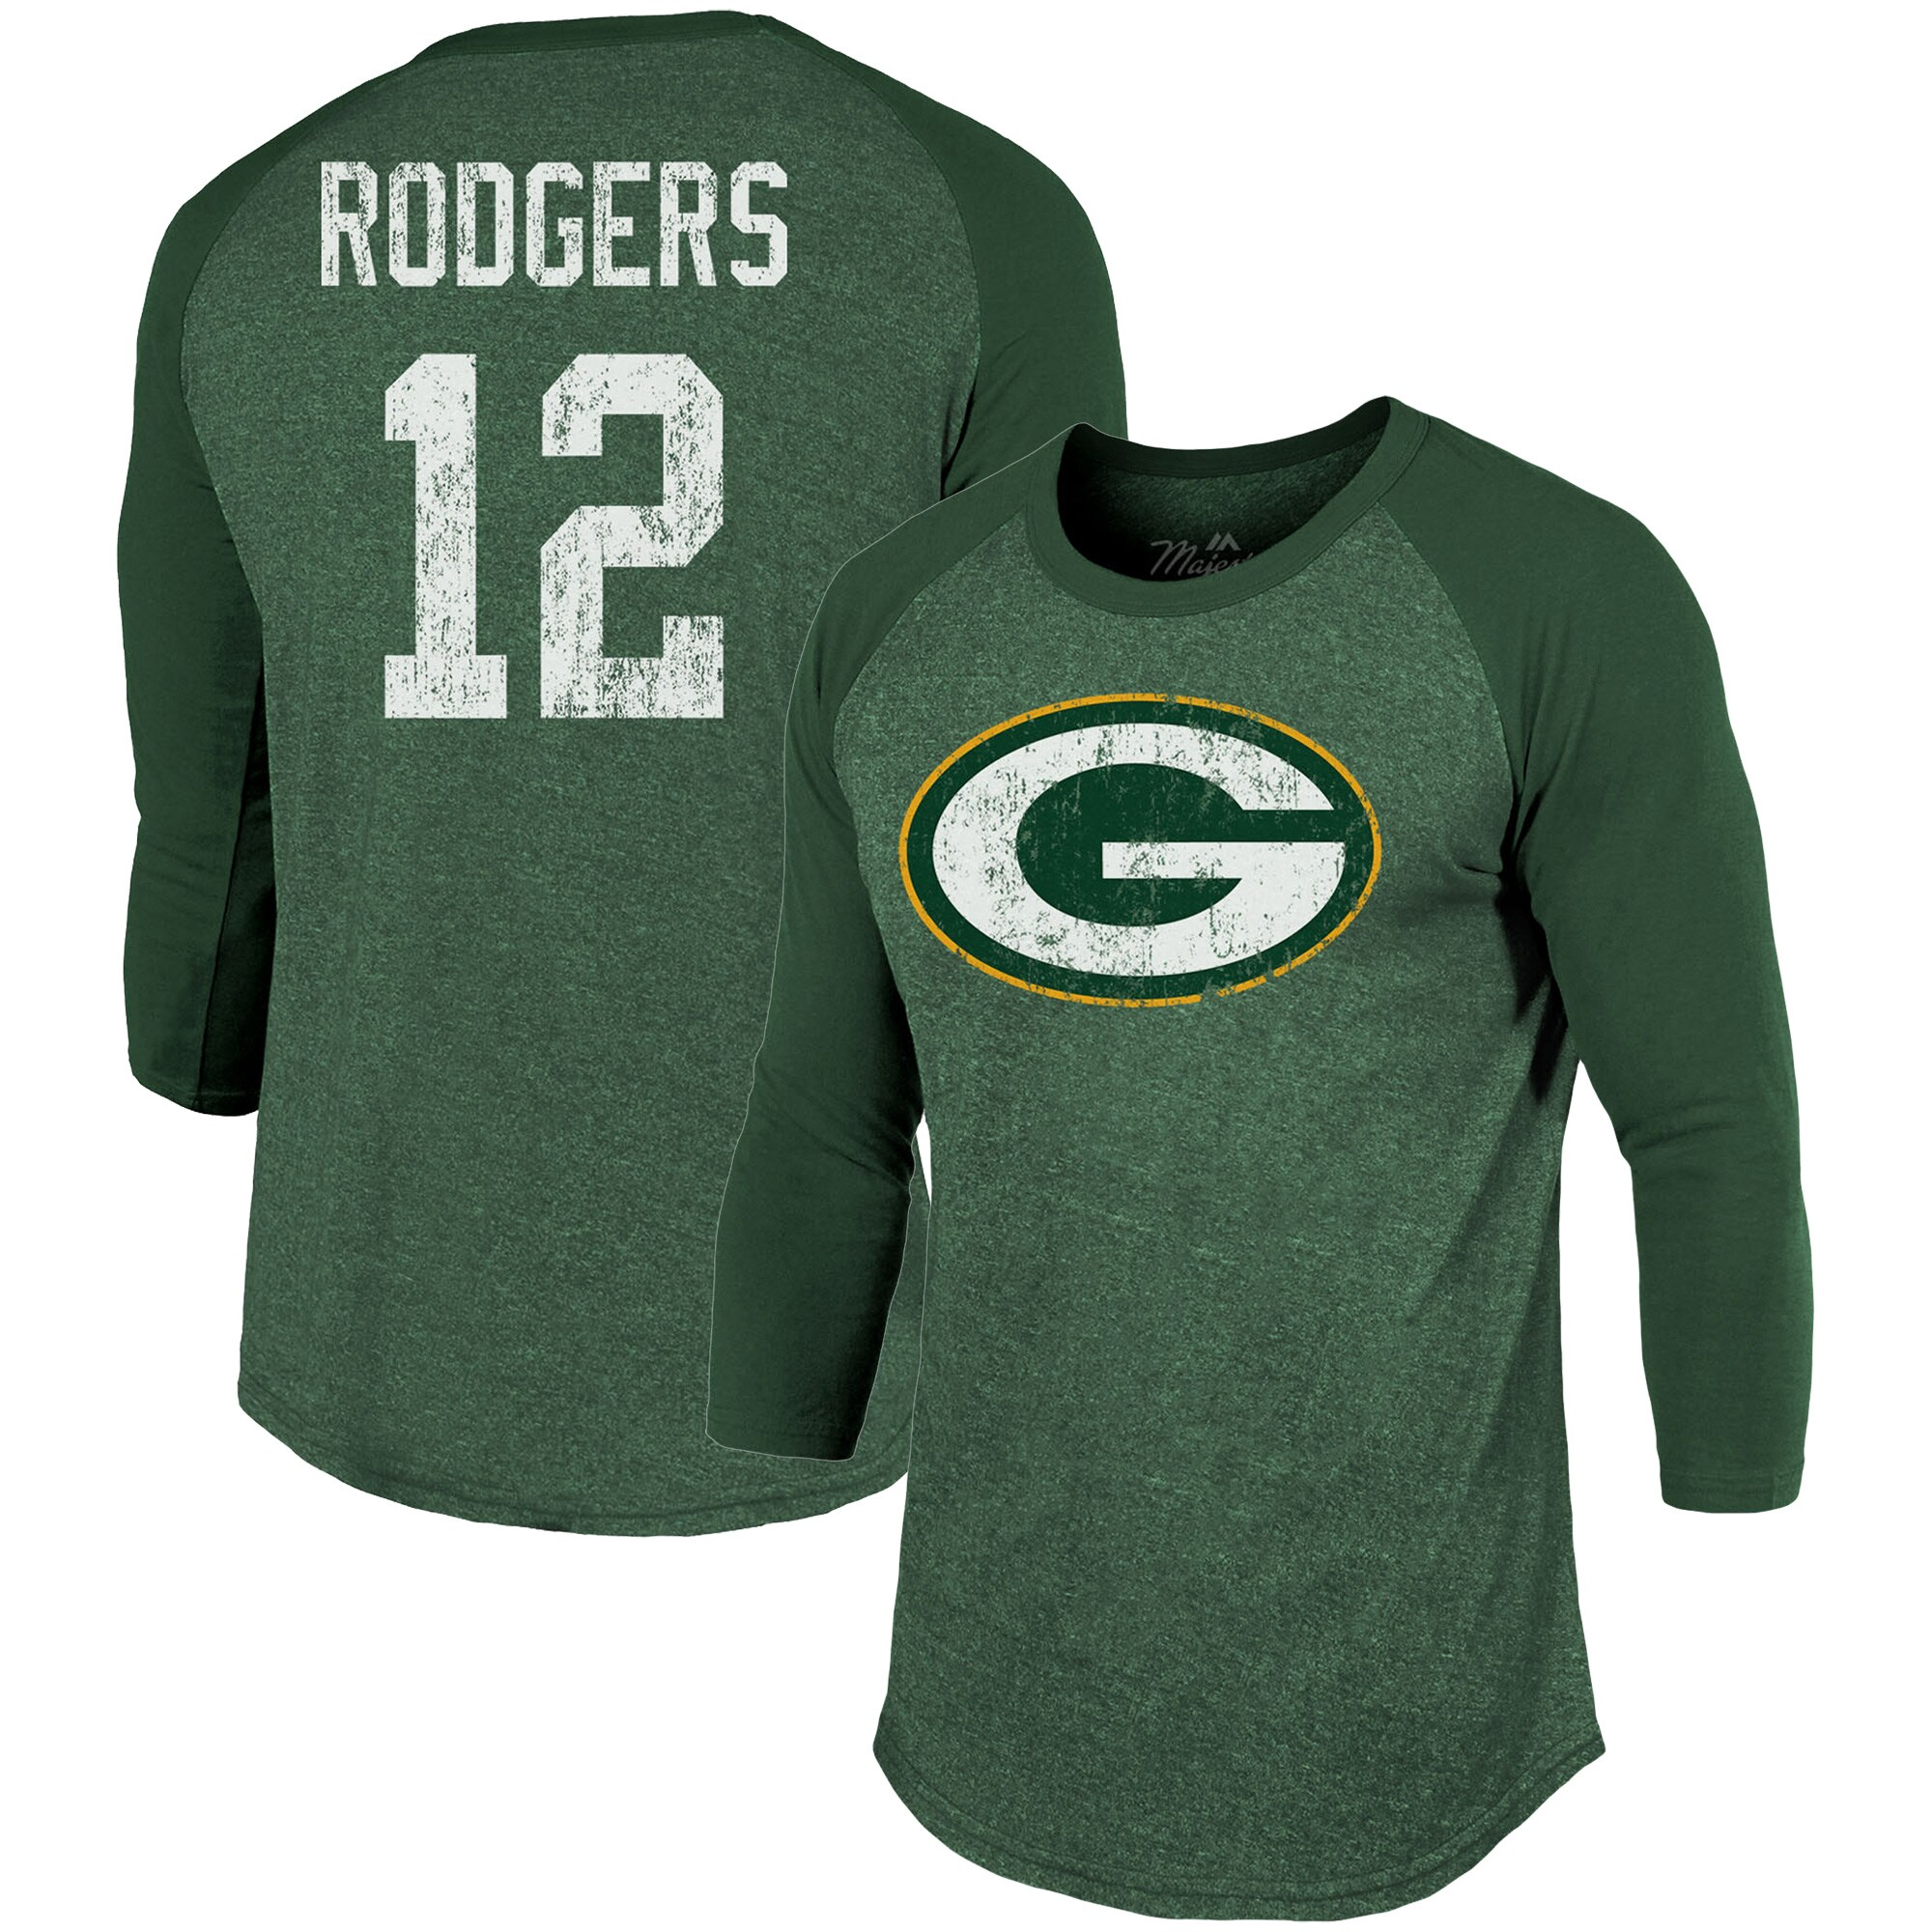 Aaron Rodgers Green Bay Packers Majestic Threads Player Name & Number Tri-Blend 3/4-Sleeve Raglan T-Shirt - Green